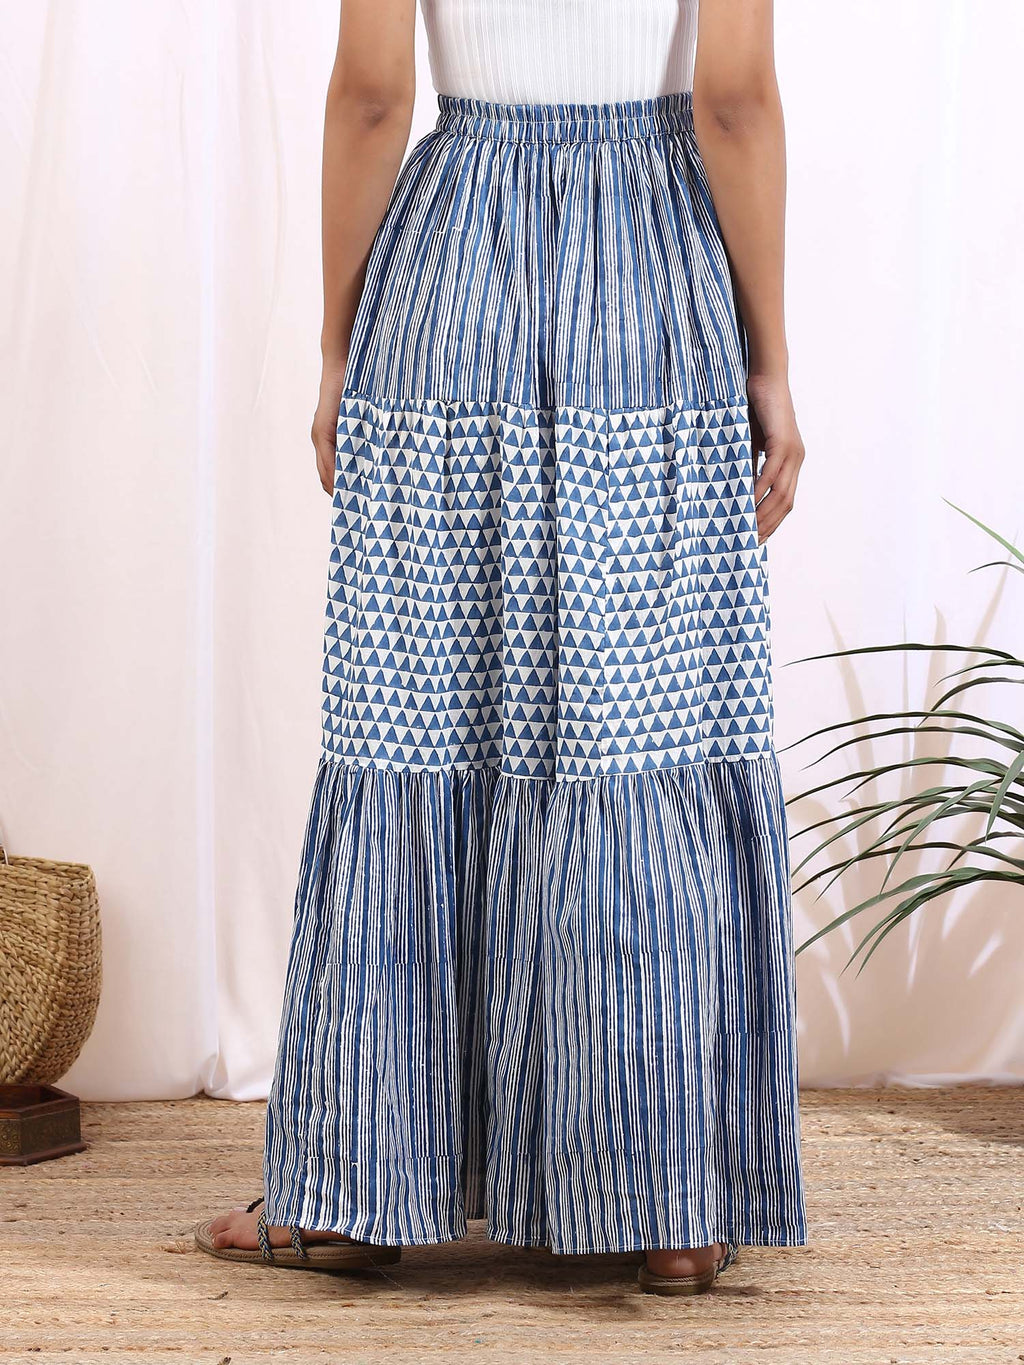 White and Blue Indigo Reves Skirt - Riviera Closet